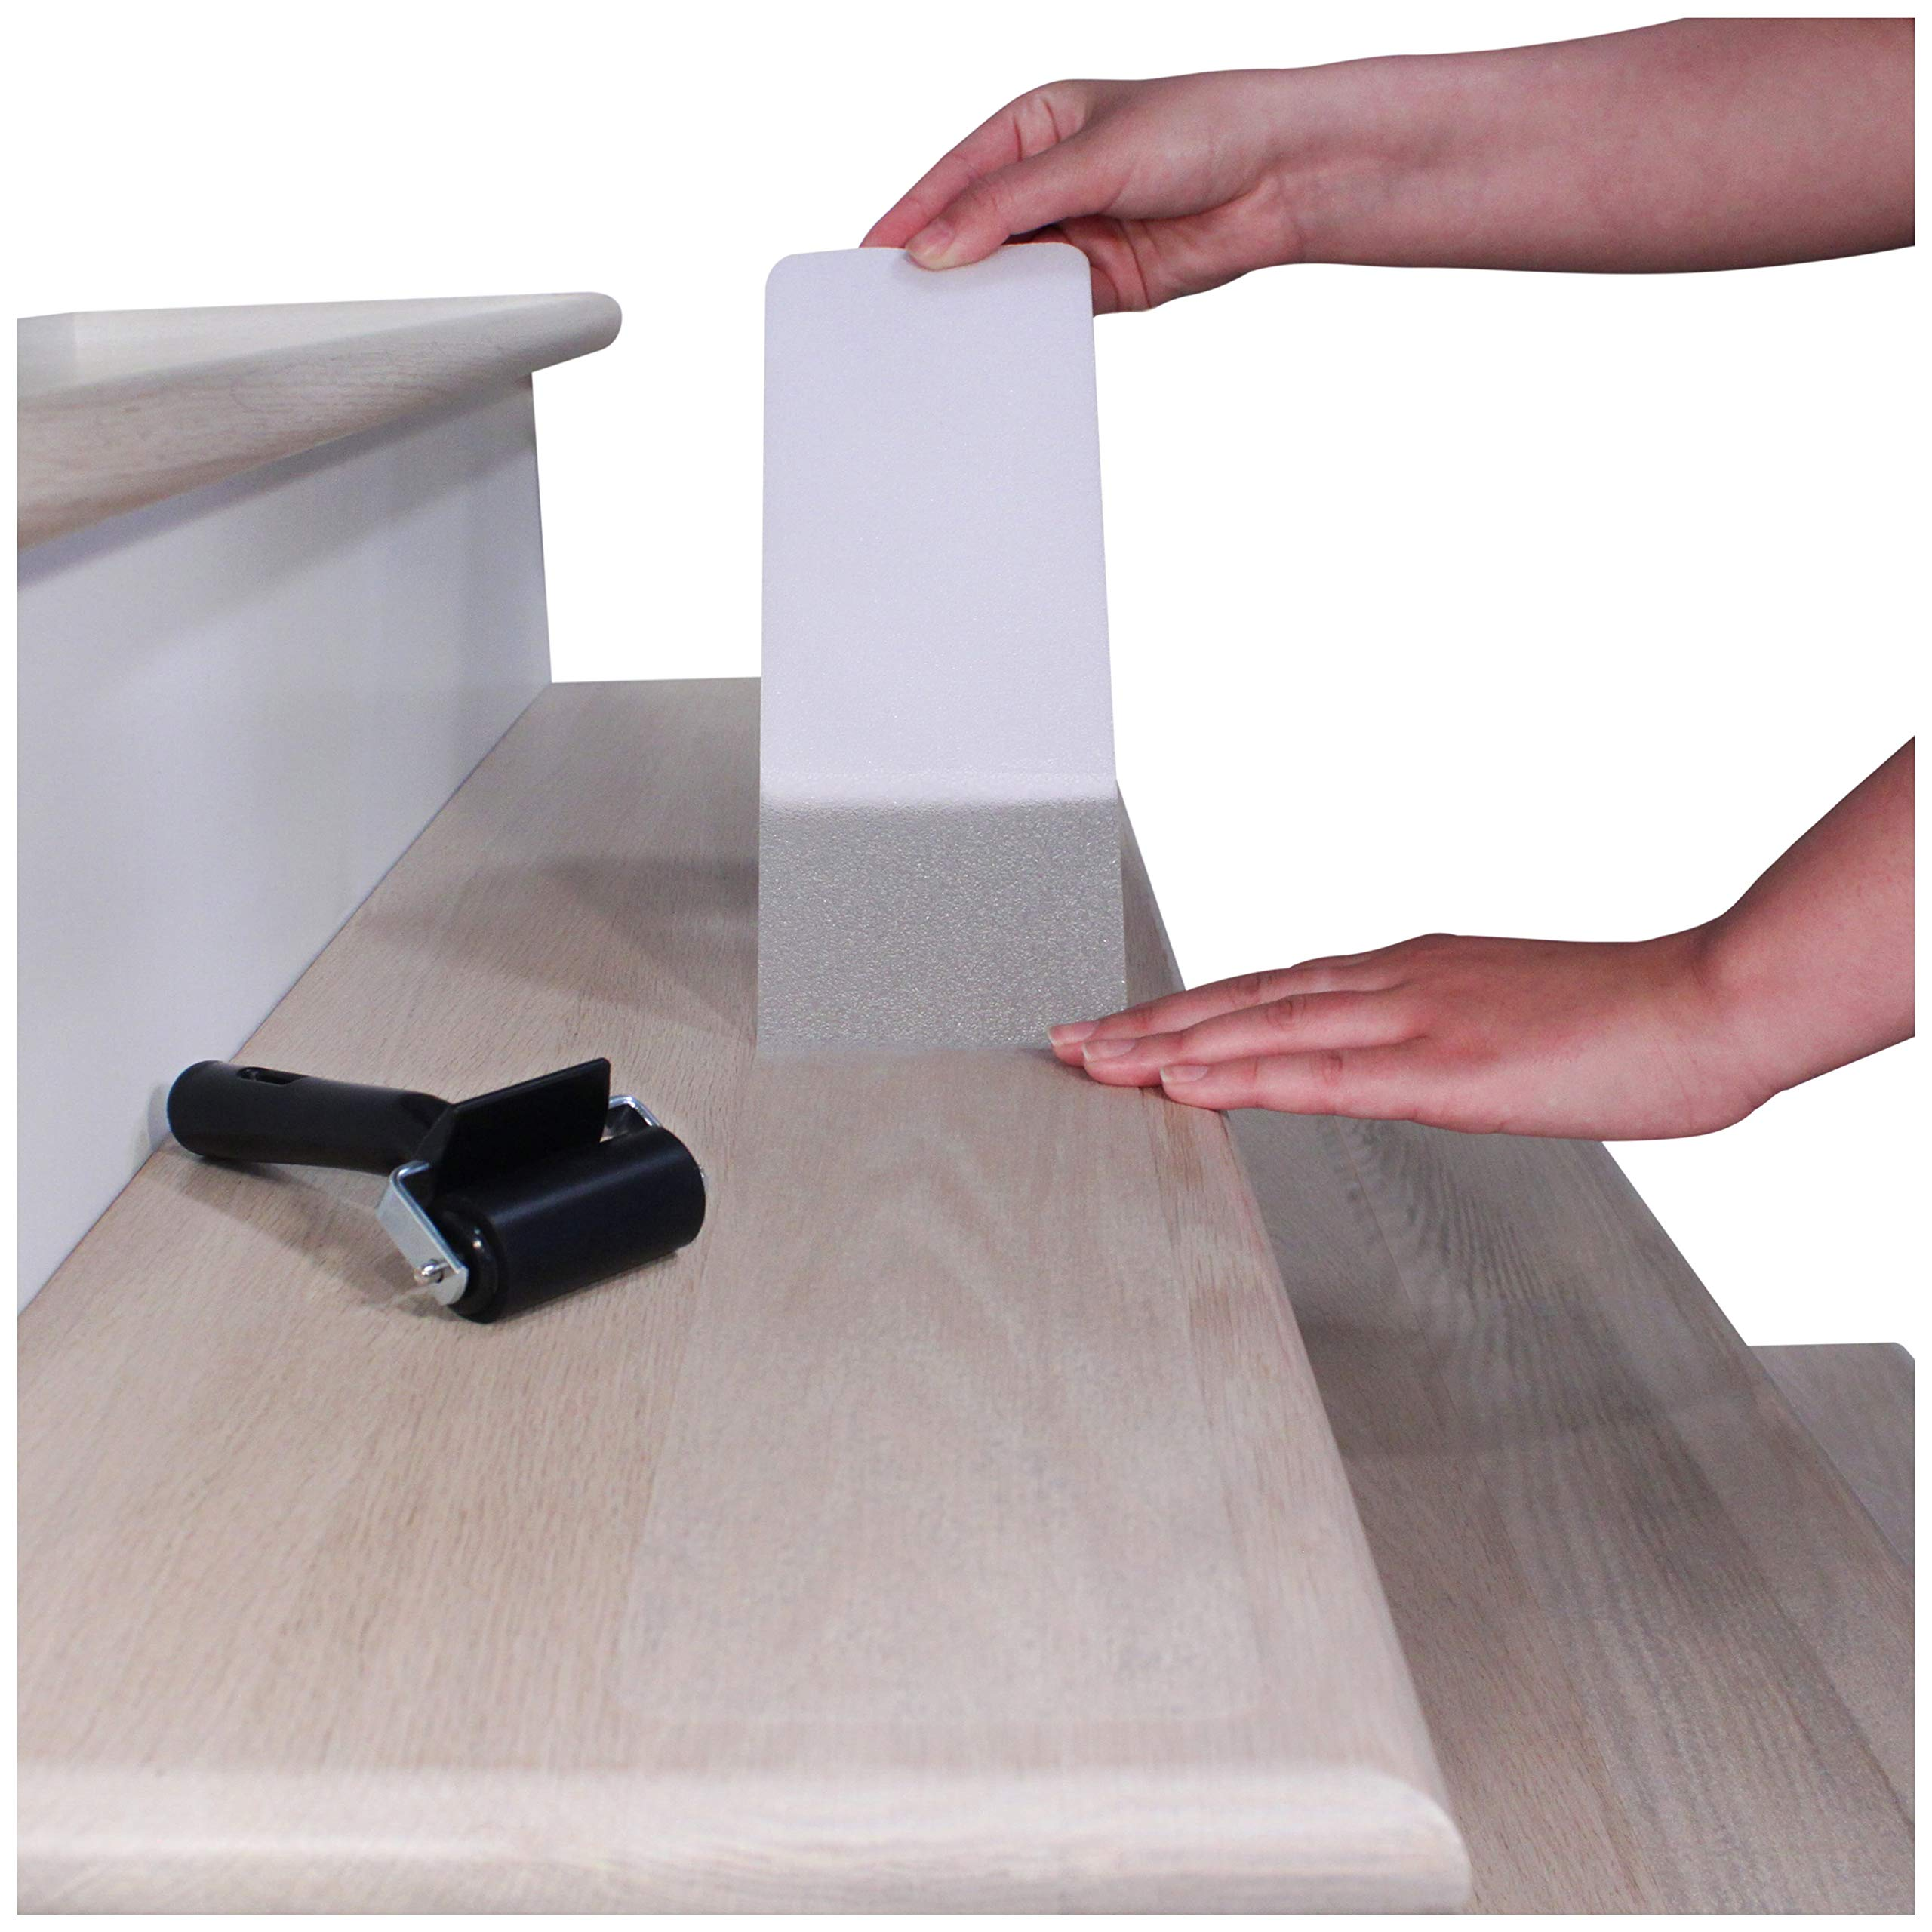 32''x4'' Non-Slip Stair Treads Tape (15-Pack) - Clear Anti-Slip Indoor Strips by <br>GRADE